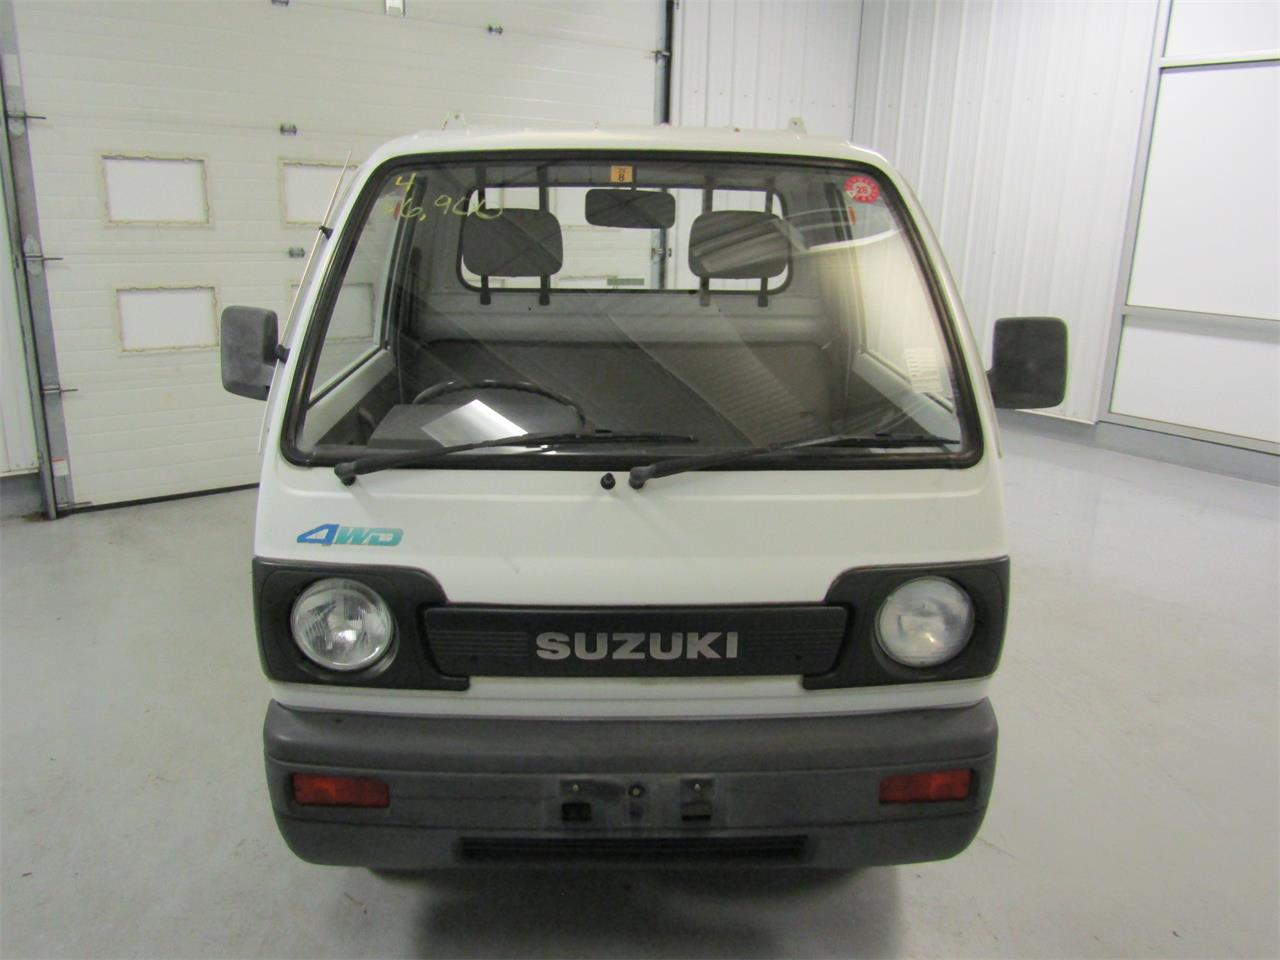 1991 Suzuki Carry for sale in Christiansburg, VA – photo 4